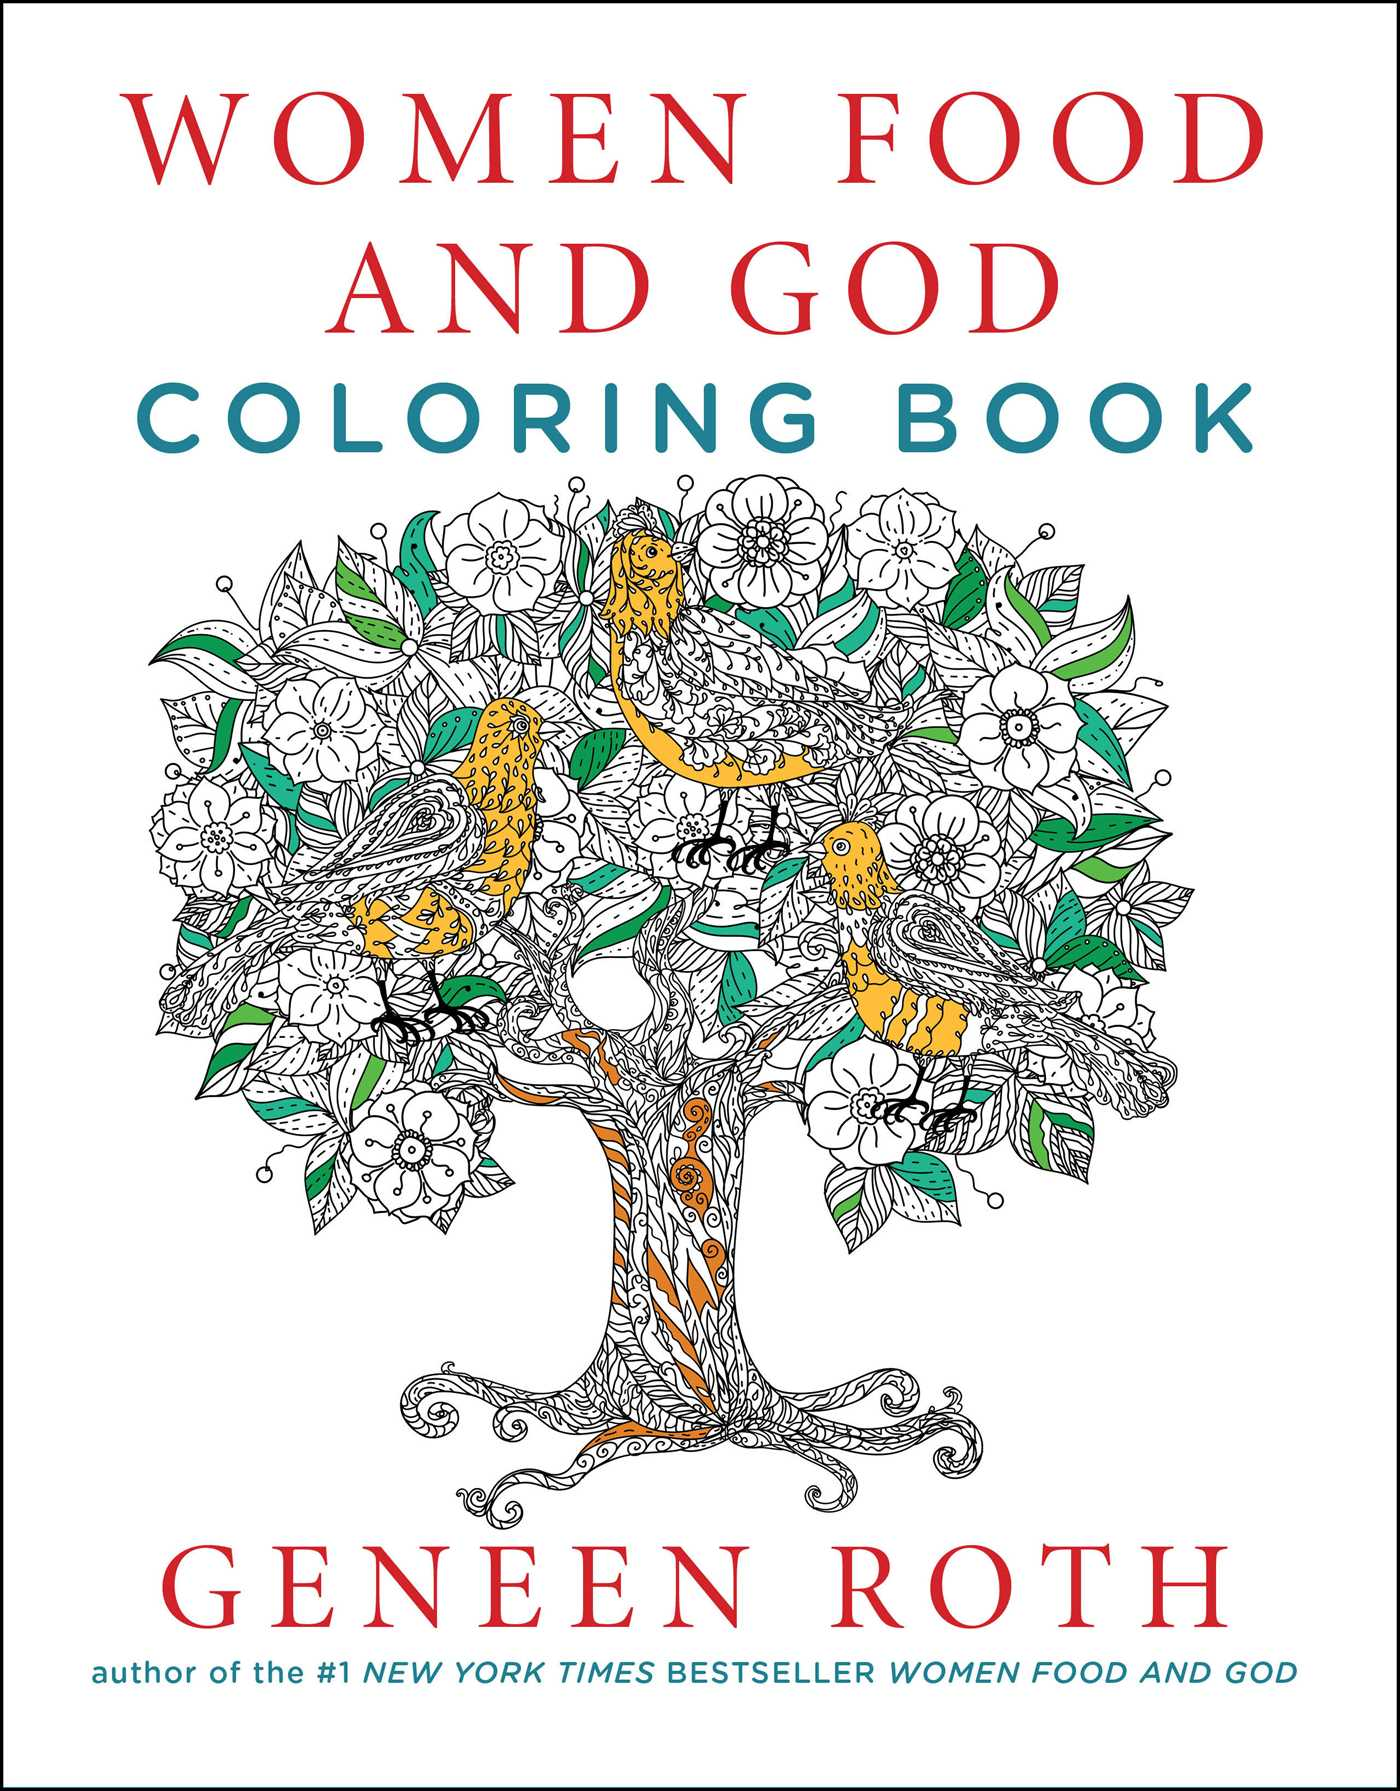 Women food and god coloring book 9781501161919 hr